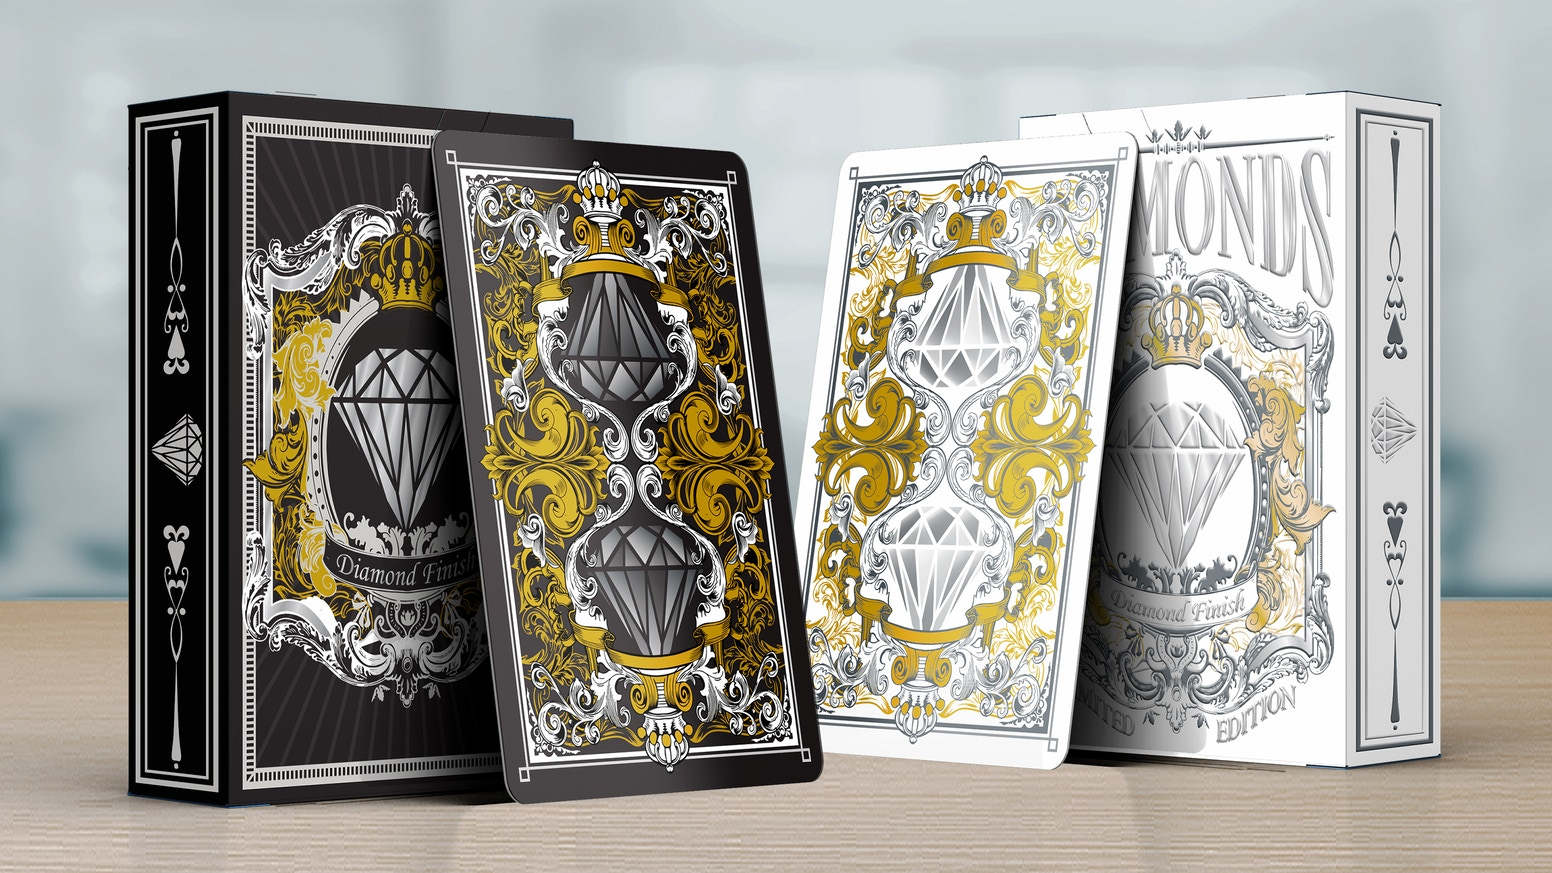 A fully custom deck of luxury playing cards, design inspired by diamonds. Get it now before its too late! Limited decks available.